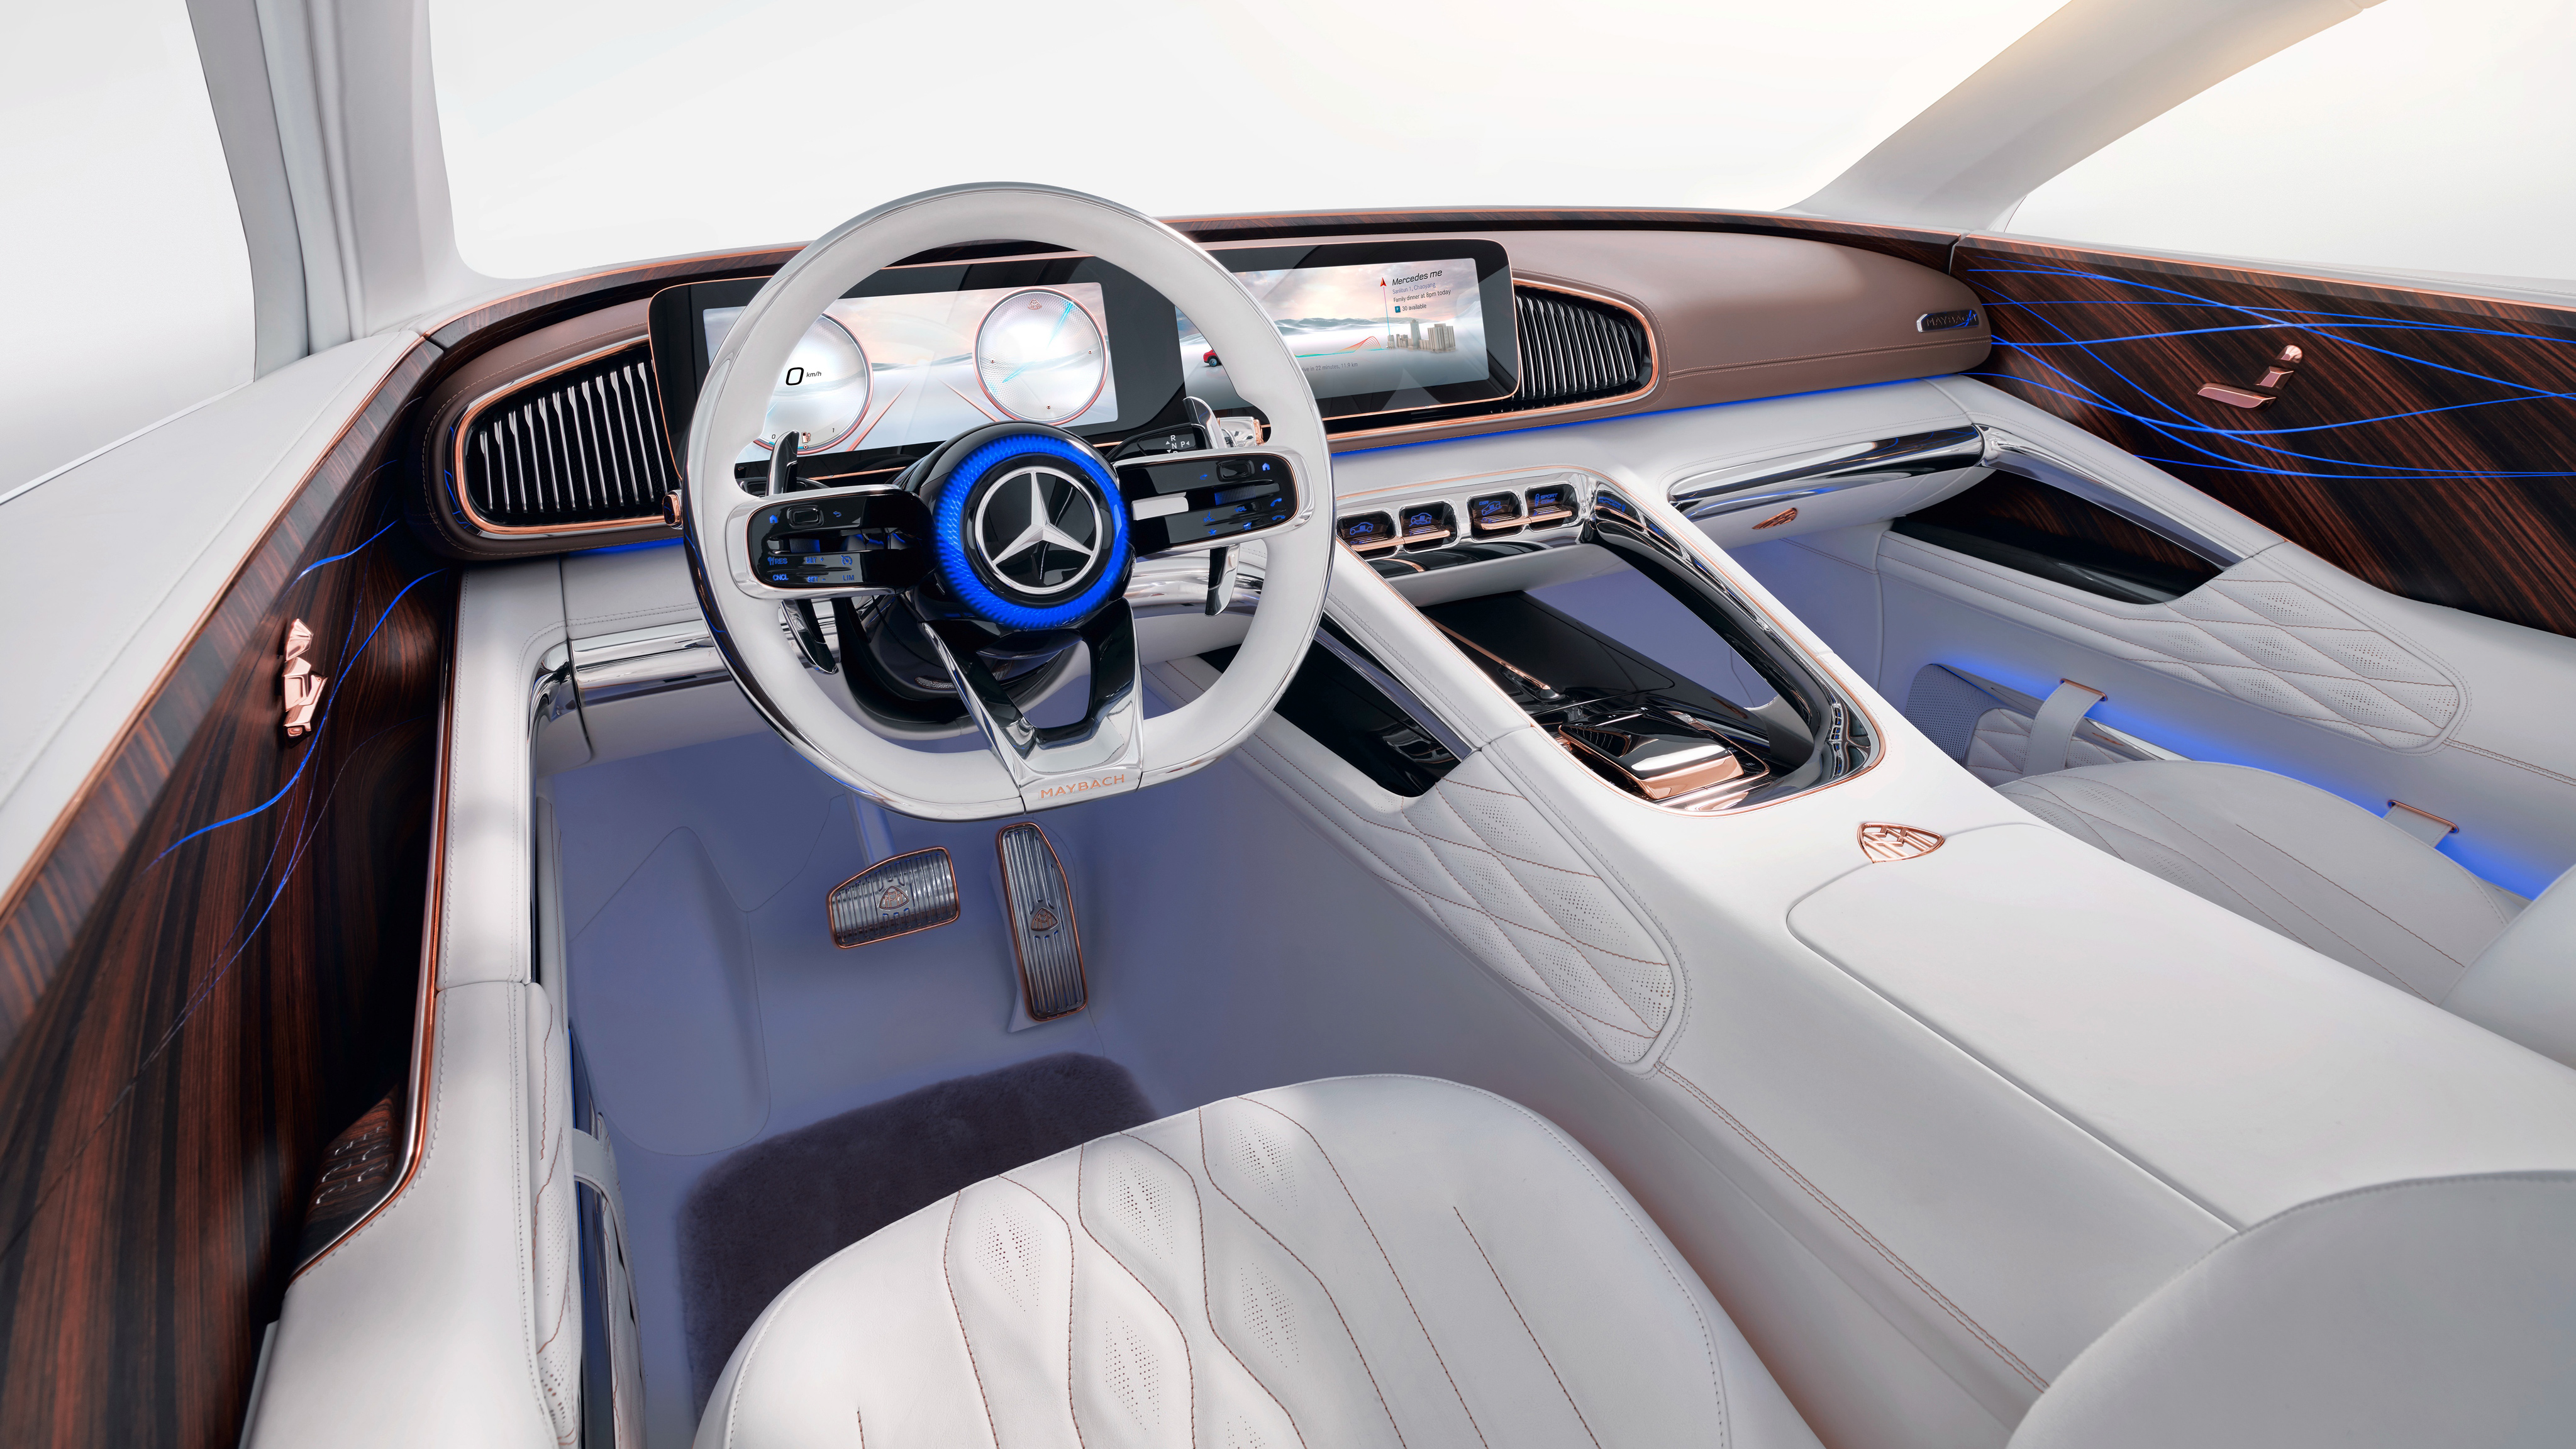 2018 vision mercedes maybach ultimate luxury interior 4k wallpaper hd car wallpapers id 10222. Black Bedroom Furniture Sets. Home Design Ideas